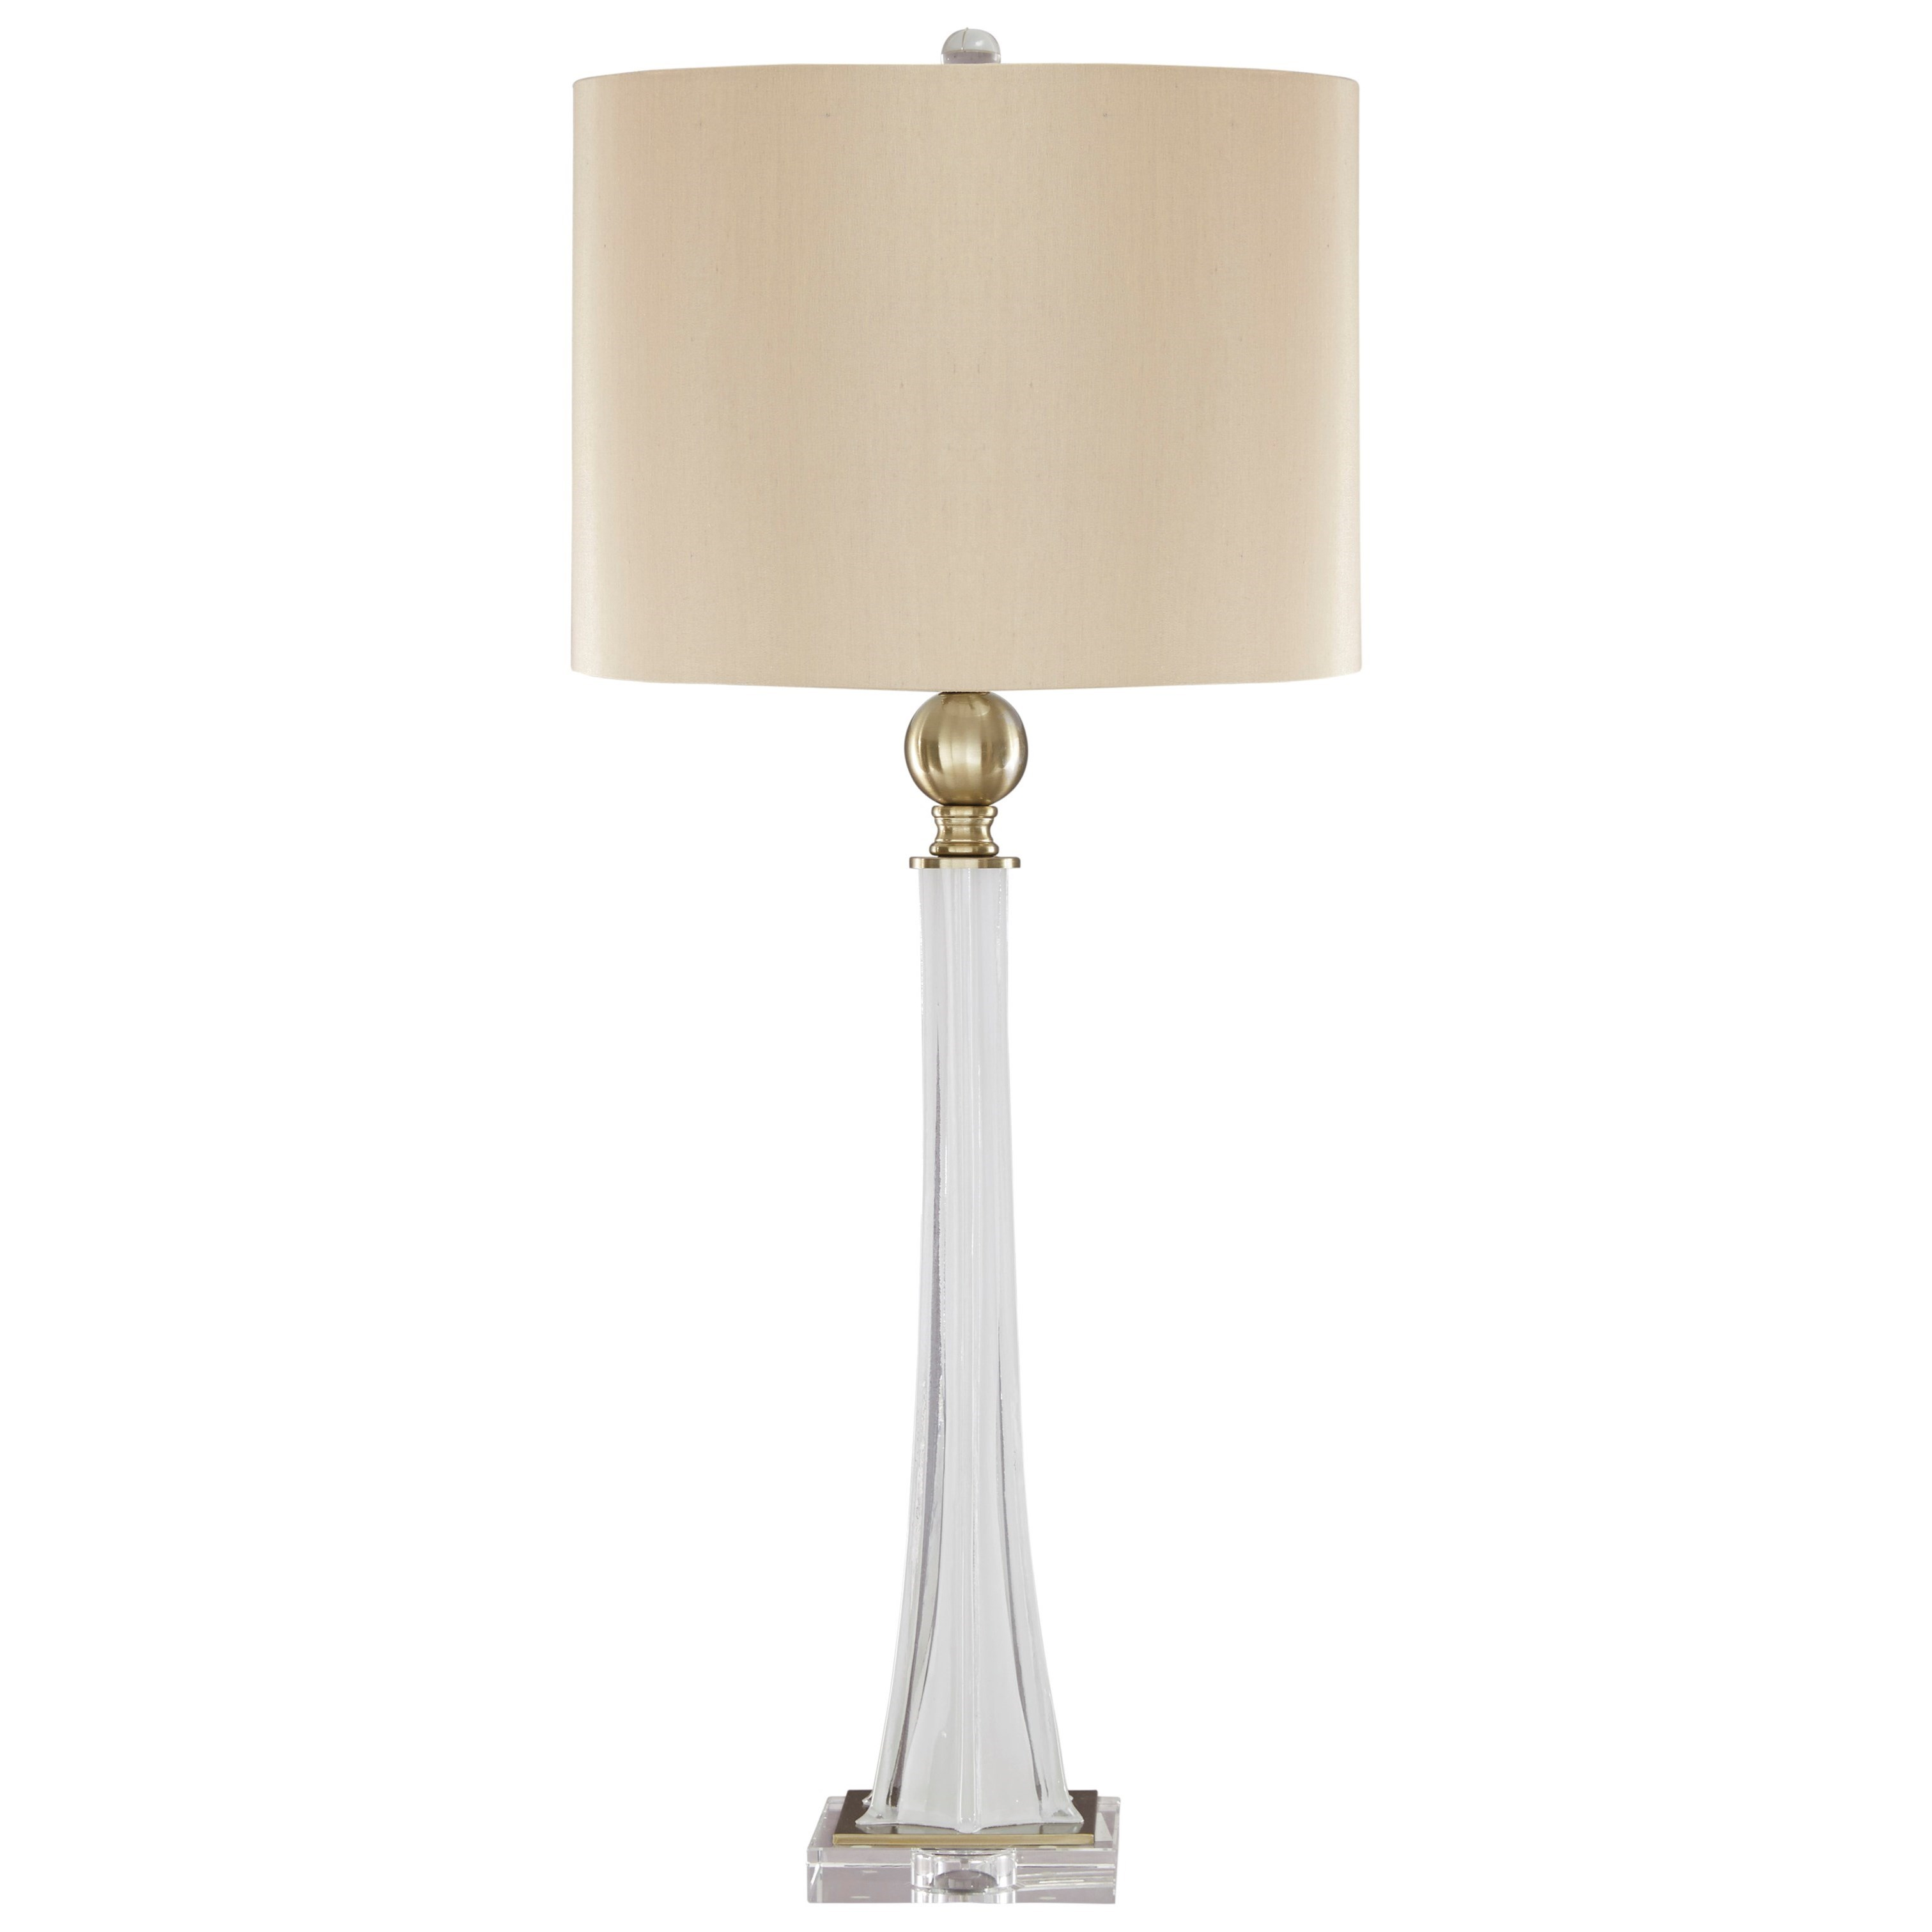 Lamps - Traditional Classics Set of 2 Laureen Glass Table Lamps by Signature Design at Fisher Home Furnishings